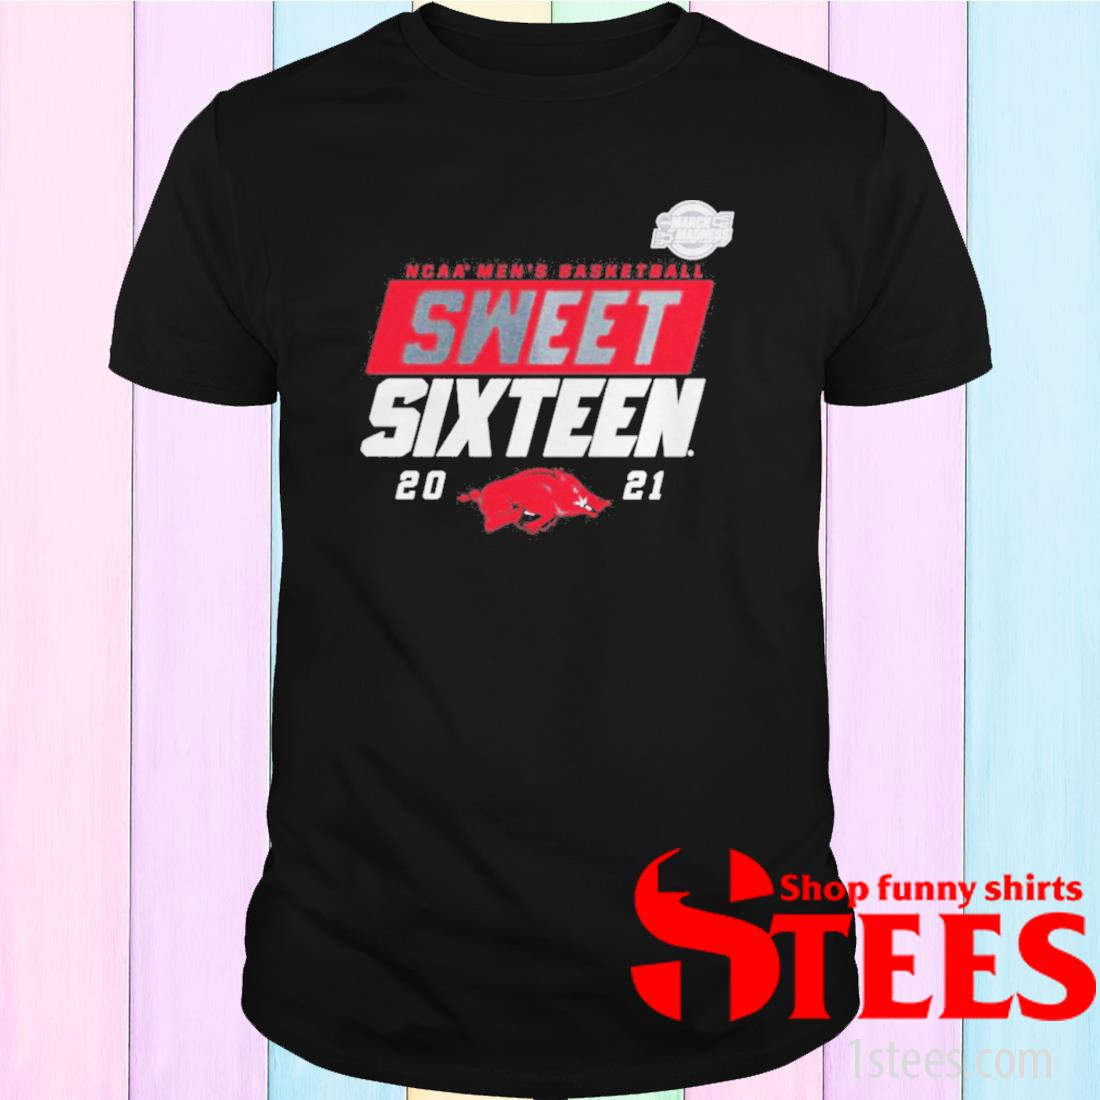 Arkansas Razorbacks 2021 Ncaa Men's Basketball Sweet Sixteen T-Shirt